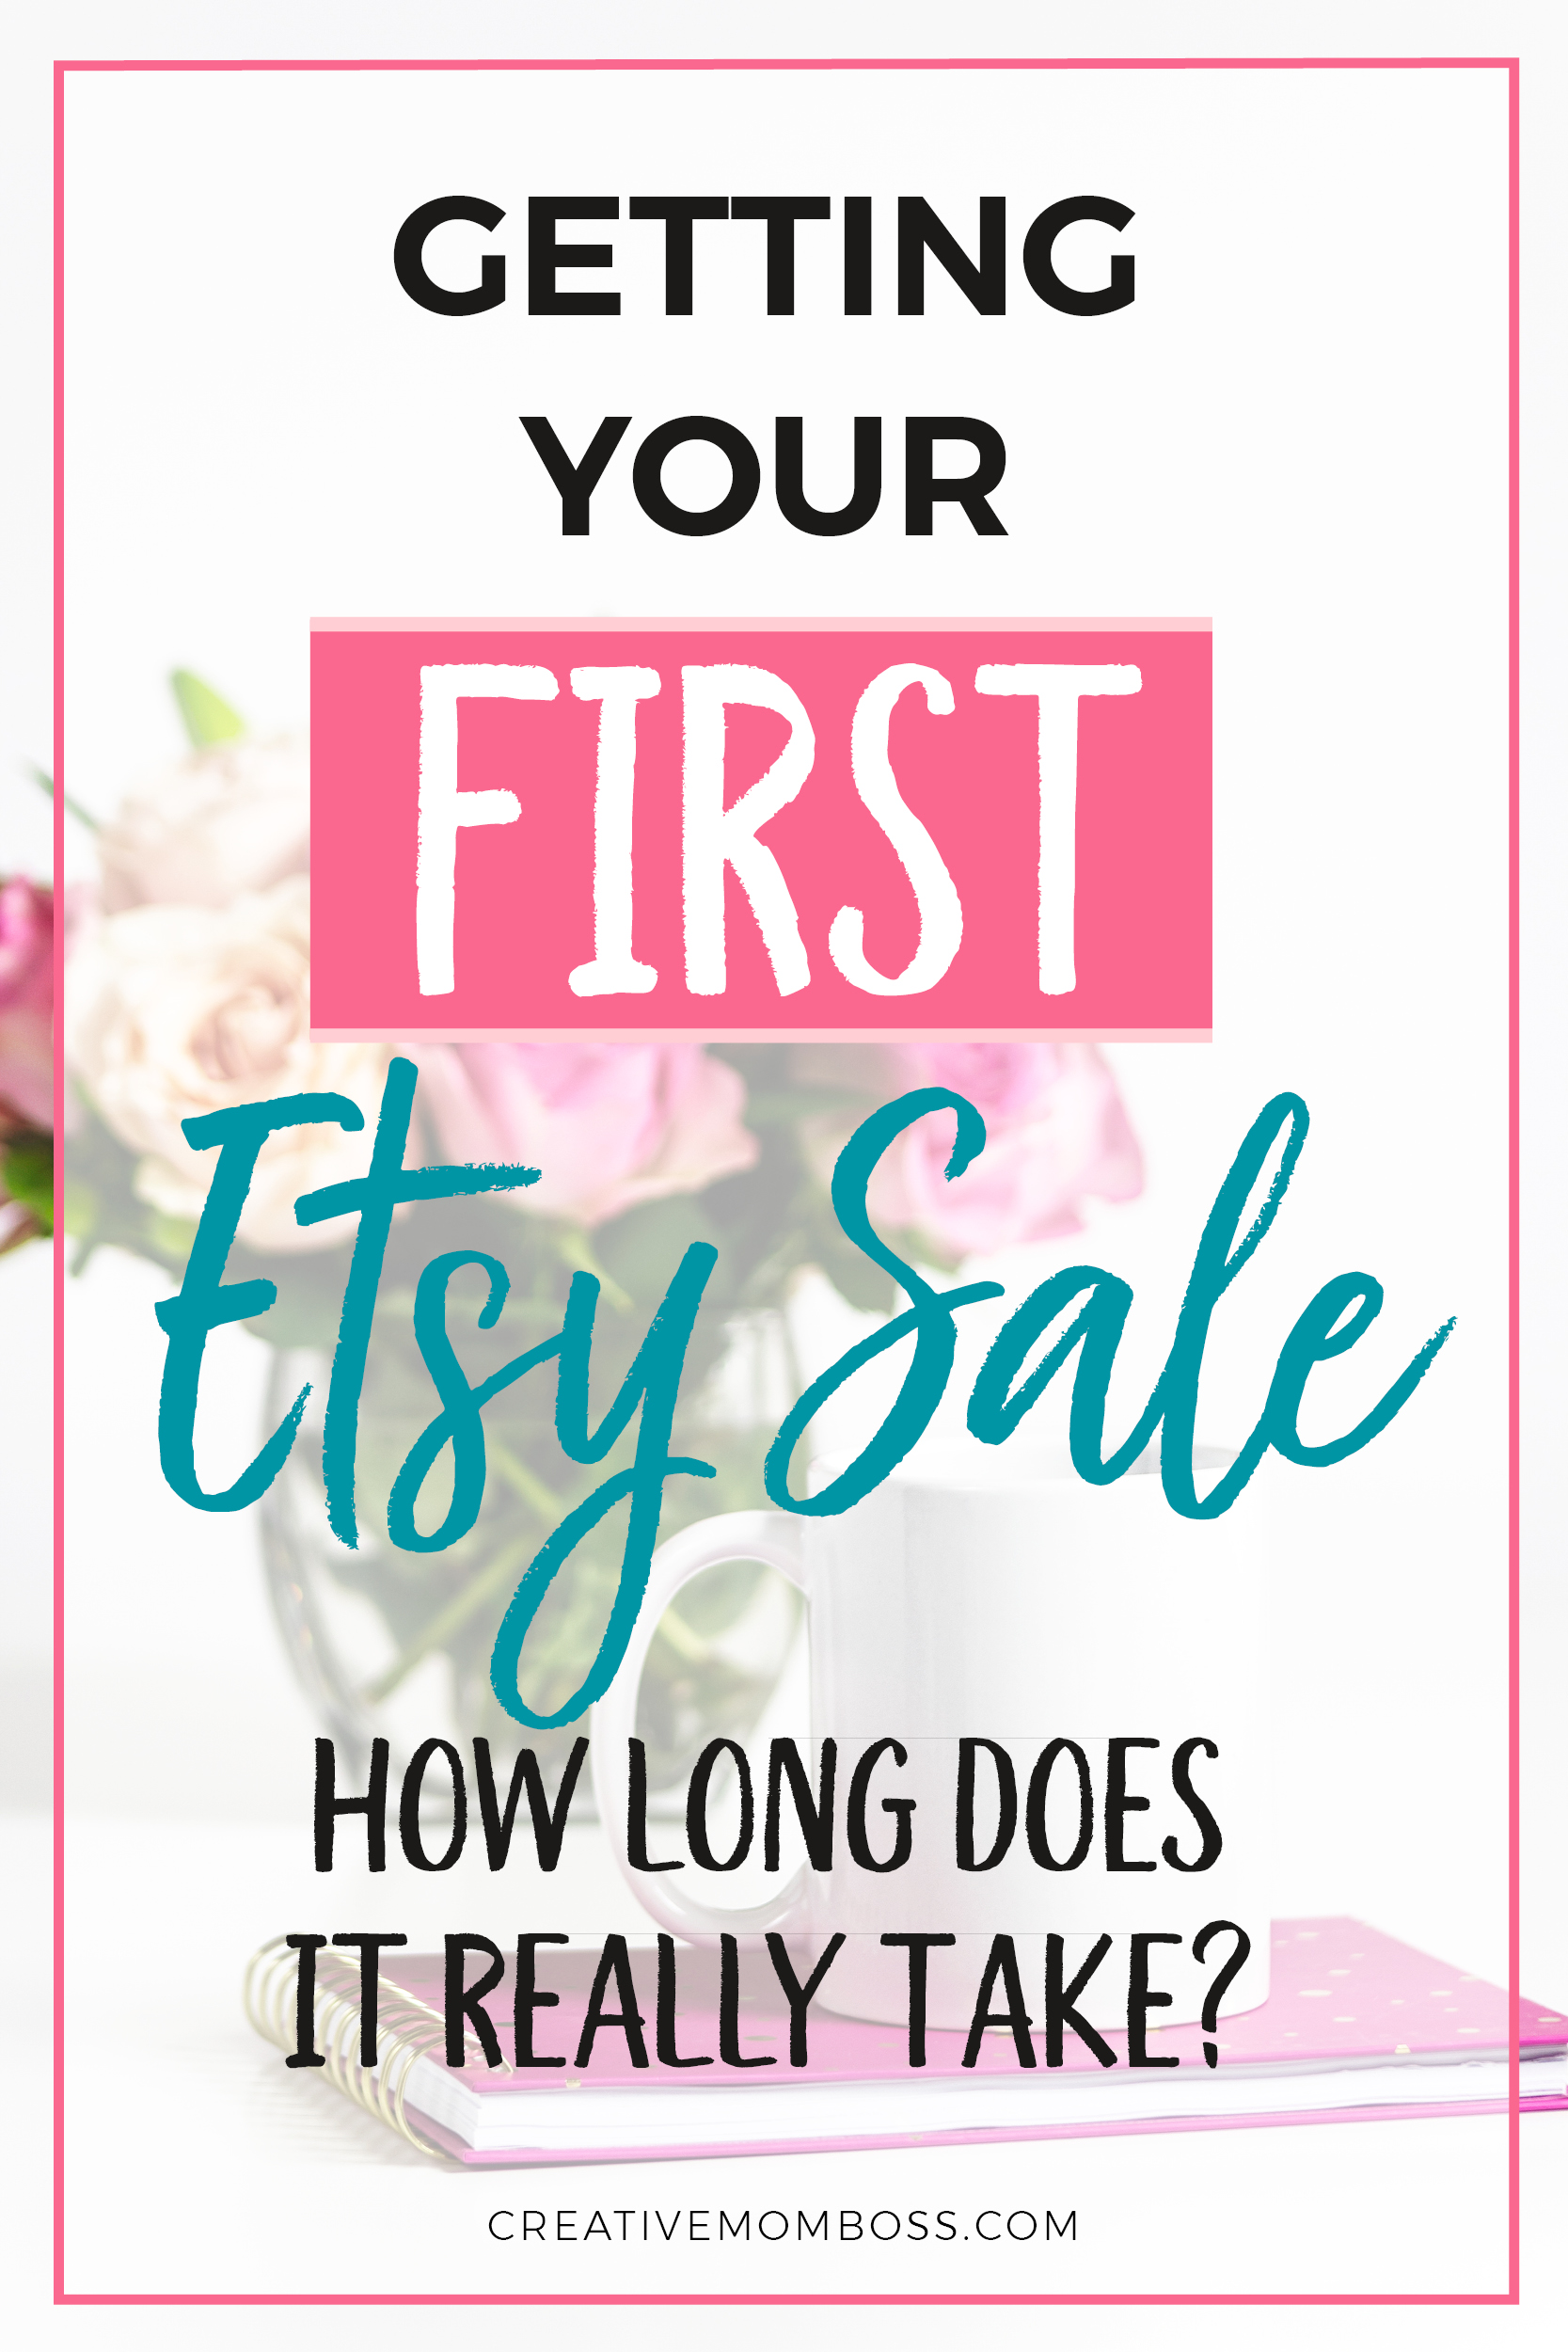 How long does it really take to make your first sale on Etsy? And what to do if you haven't started making consistent sales yet.